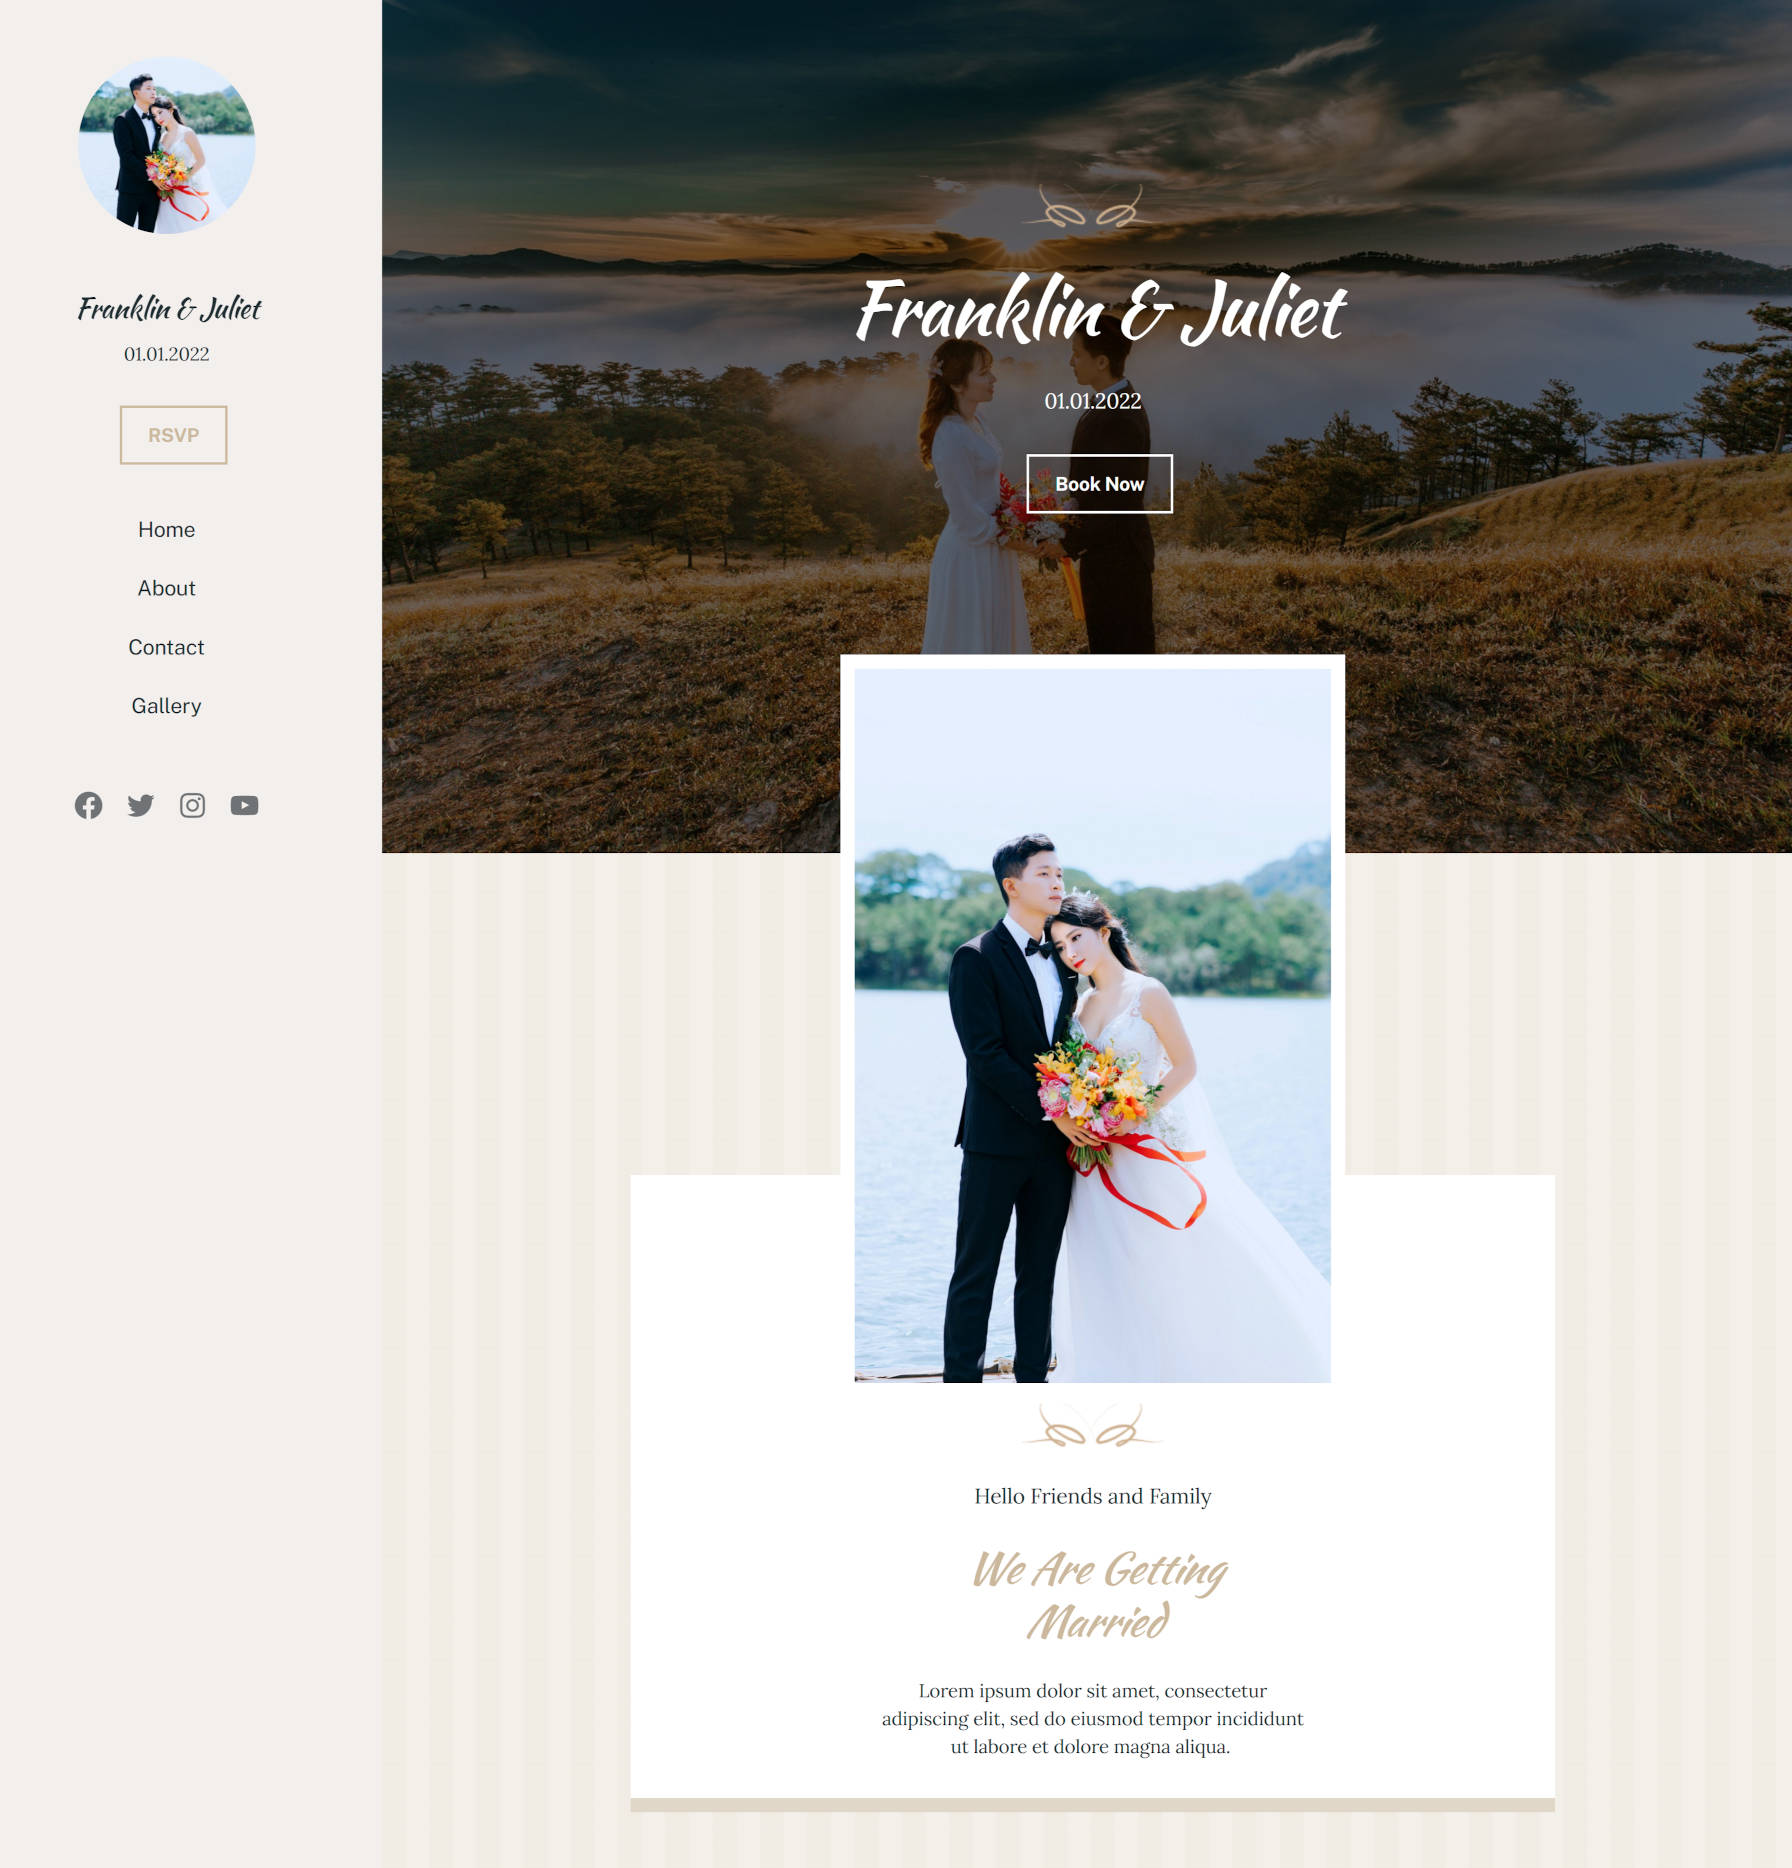 recreating-the-classic-wedding-wordpress-theme-homepage-with-the-block-editor-2 Recreating the Classic Wedding WordPress Theme Homepage With the Block Editor